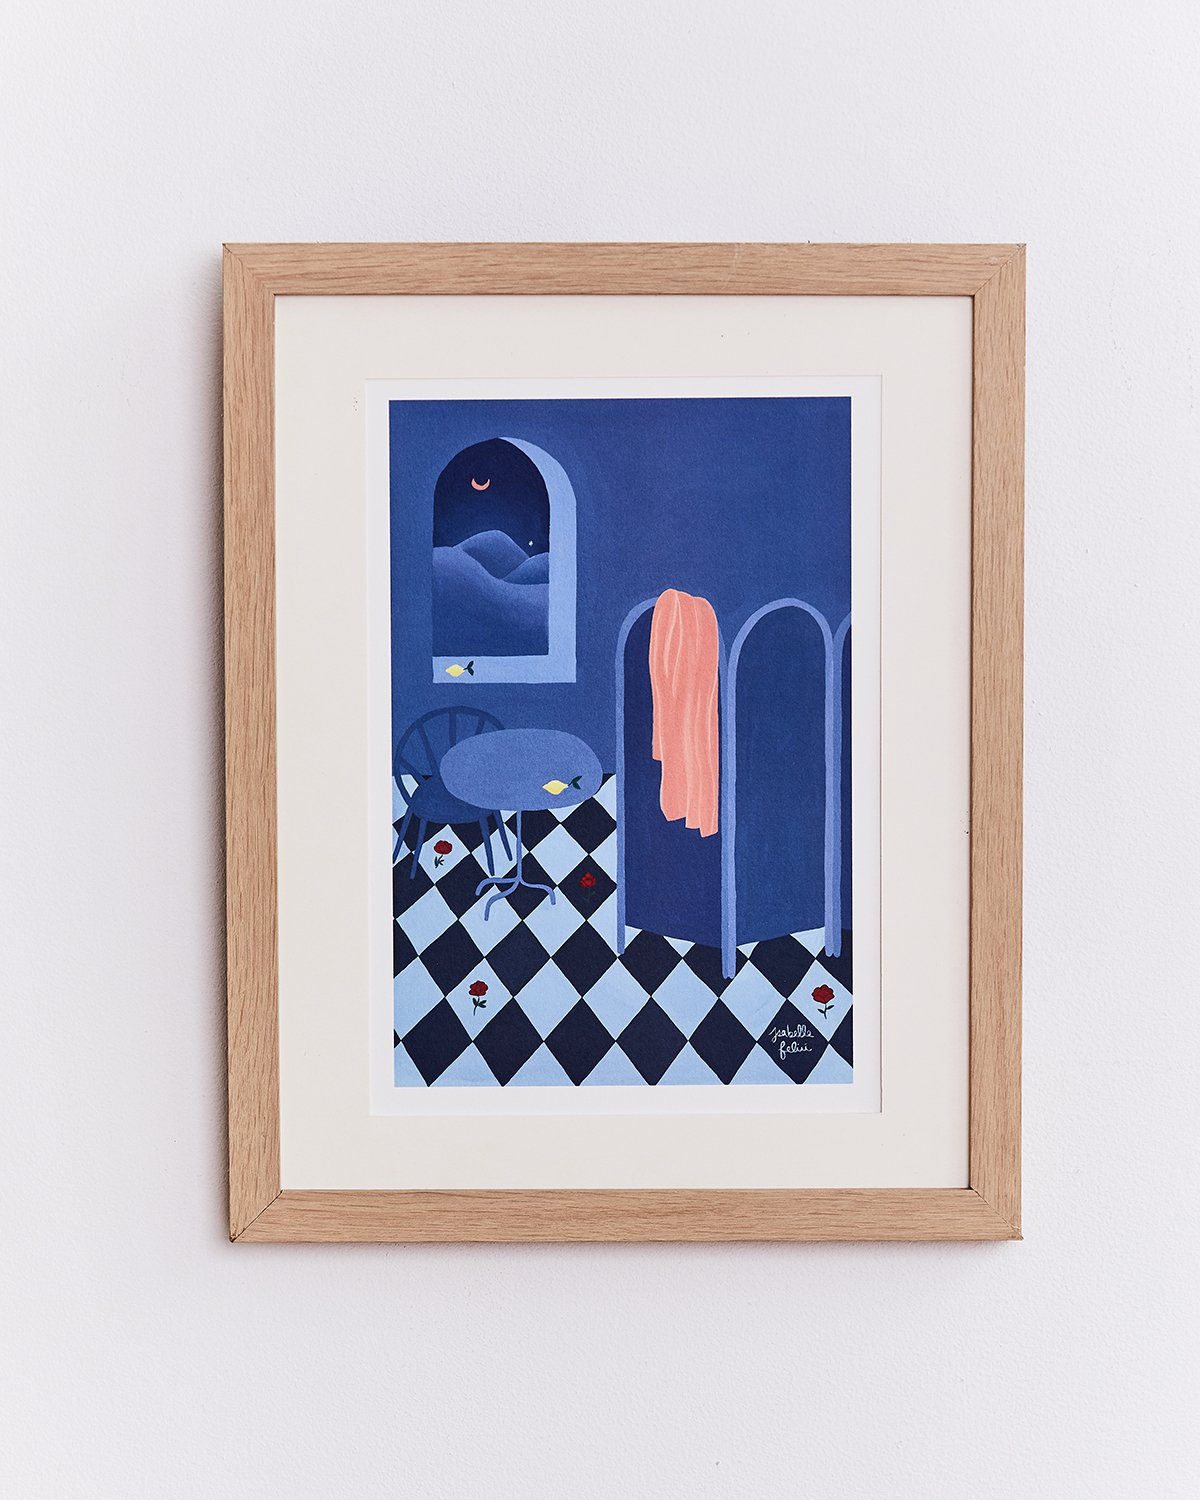 Isabelle Feliu x Bed Threads 'Nuit Silencieuse' Print